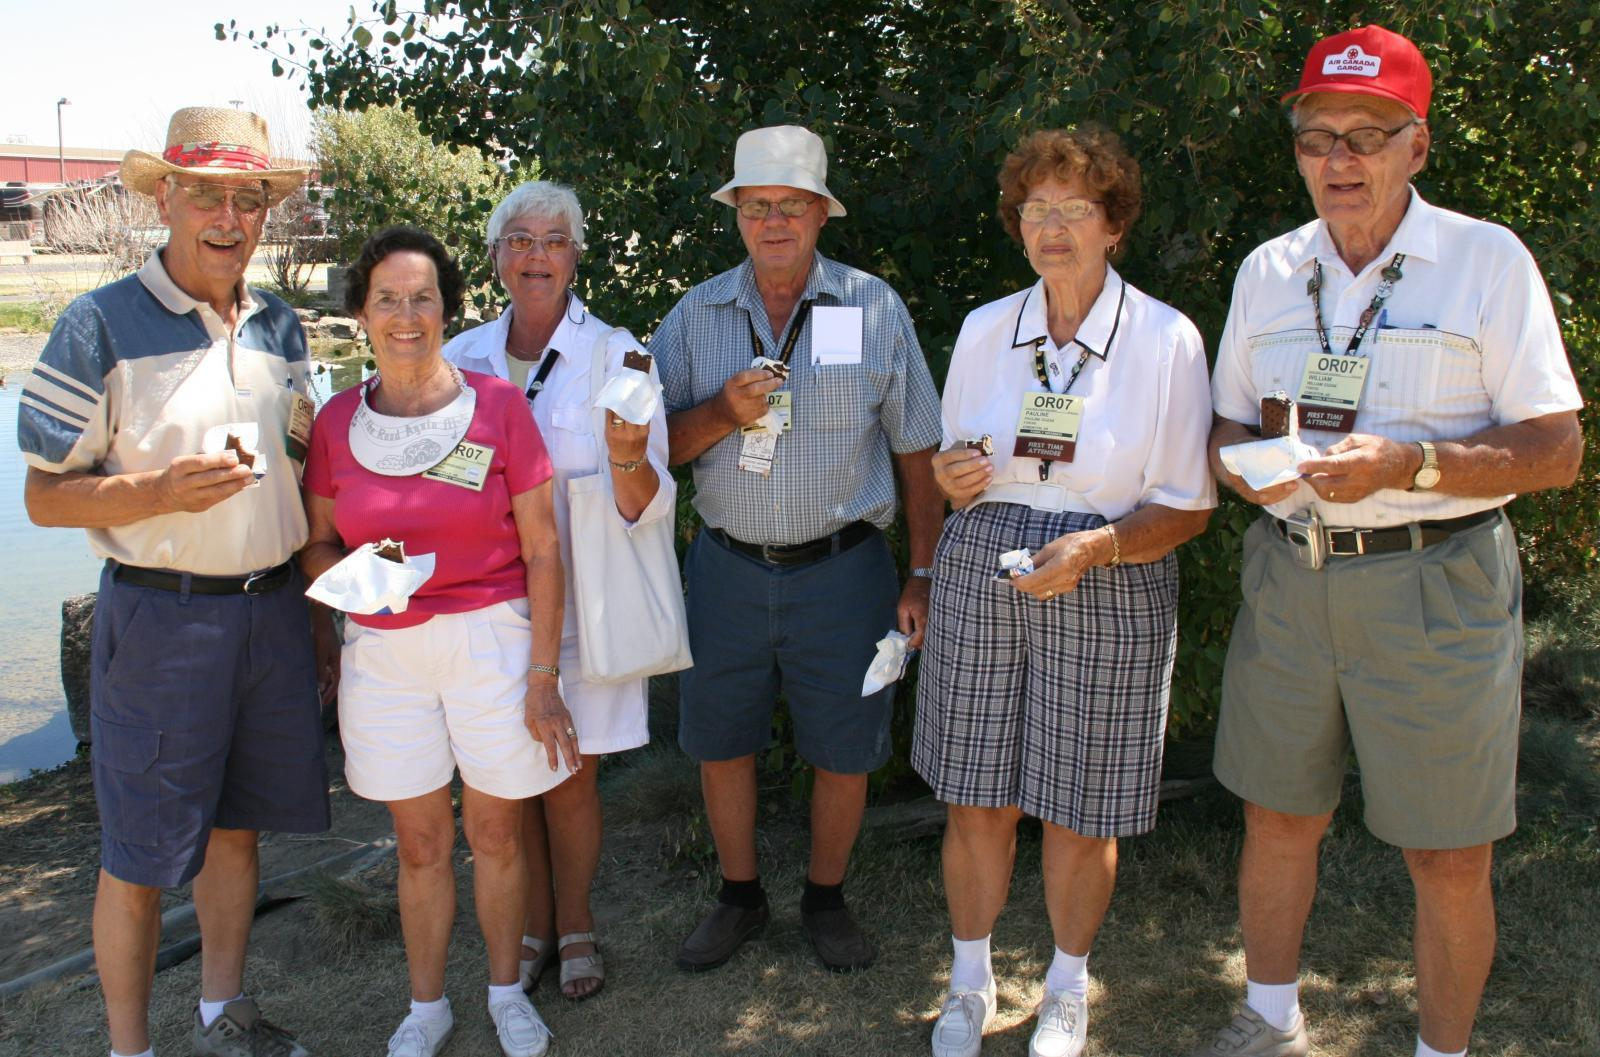 Fellowship with other motorhome owners is a hallmark of FMCA